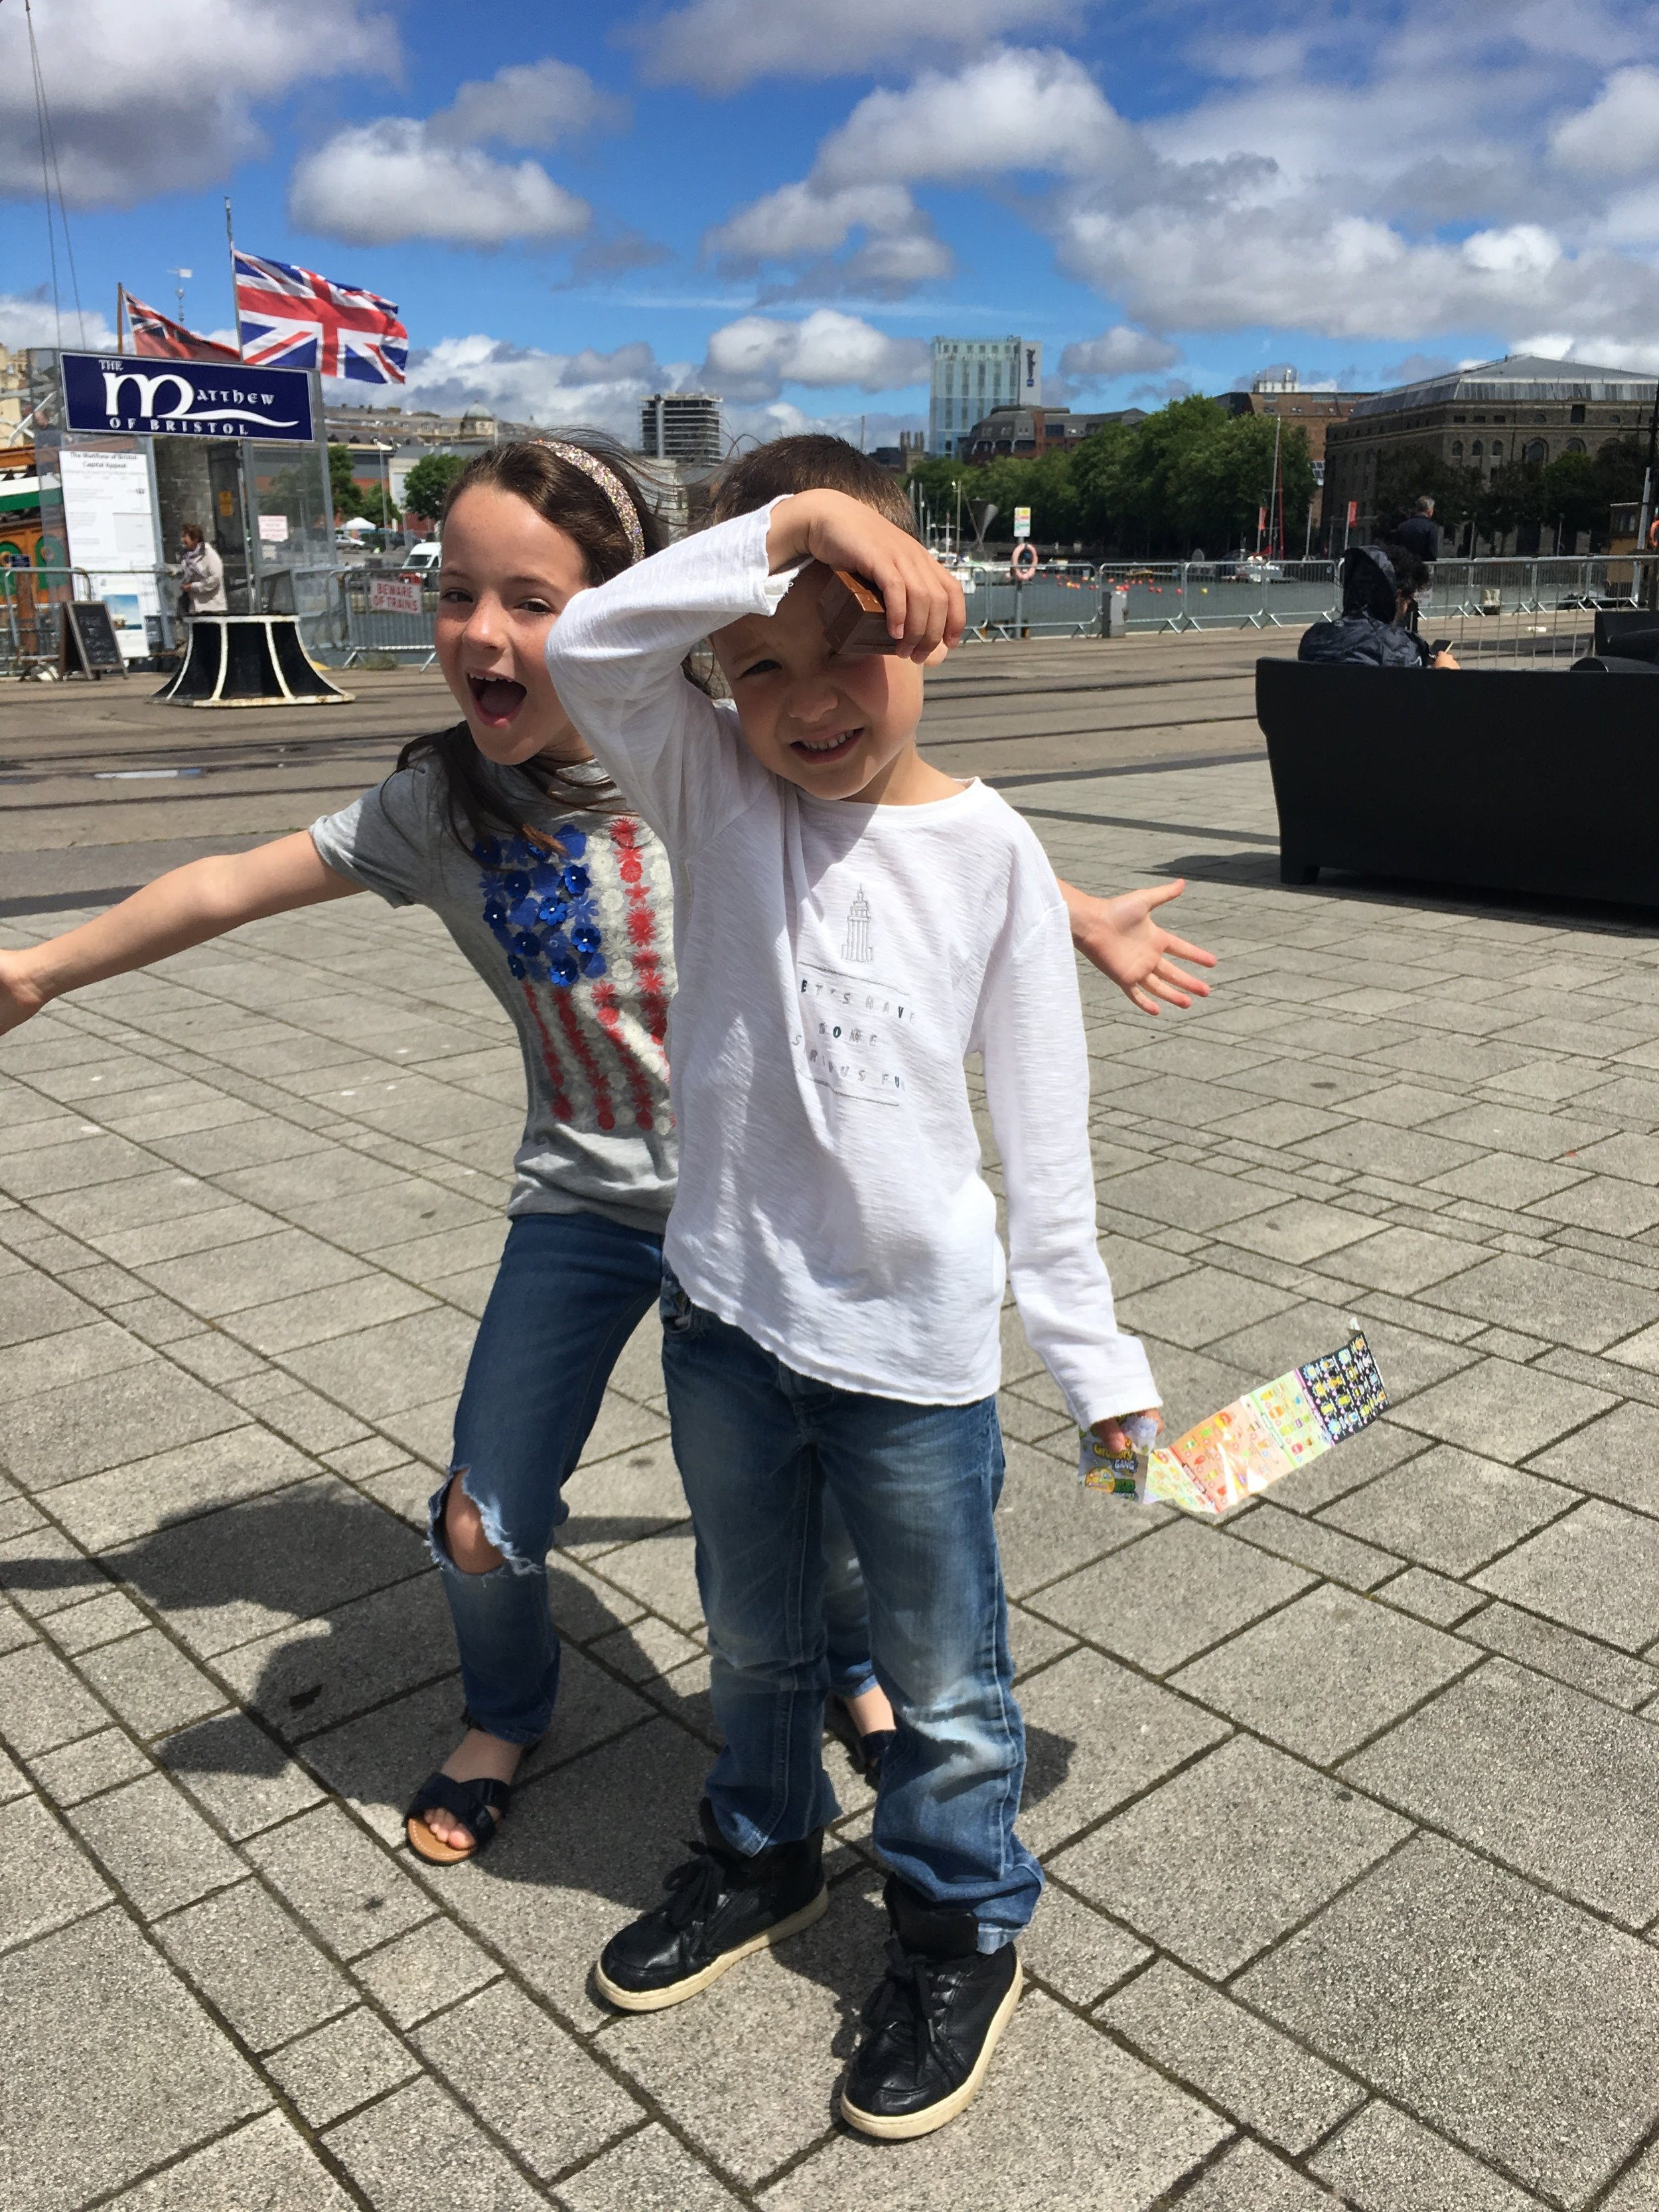 Izan and his big sister Nerea had a great time by the Bristol Harbourside.